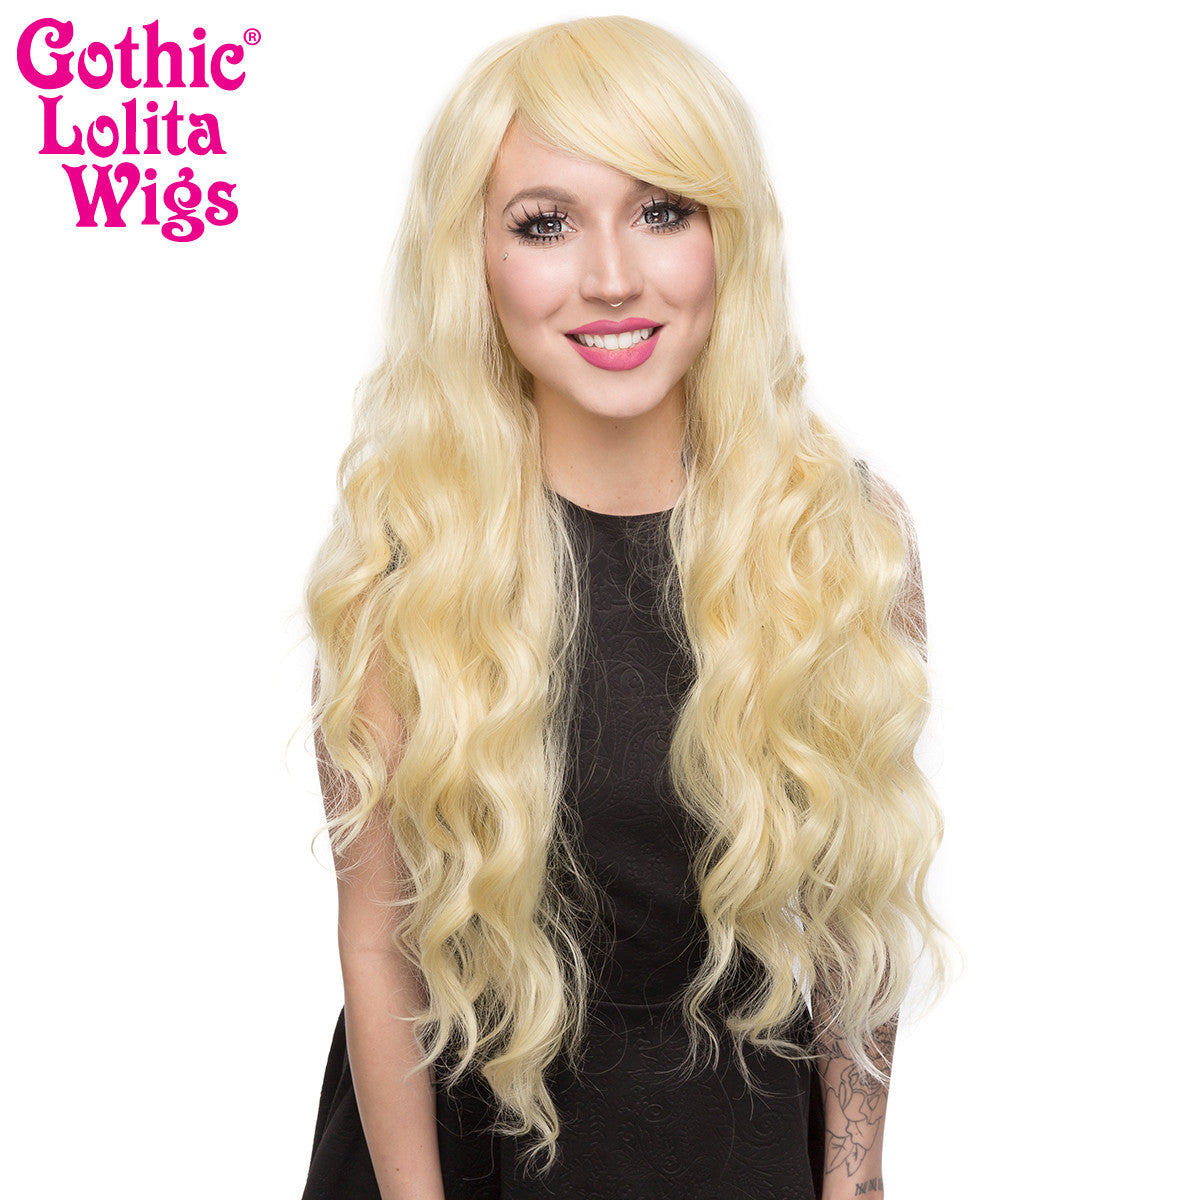 Gothic Lolita Wigs® <br> Classic Wavy Lolita™ Collection - Light Blonde Mix -00042